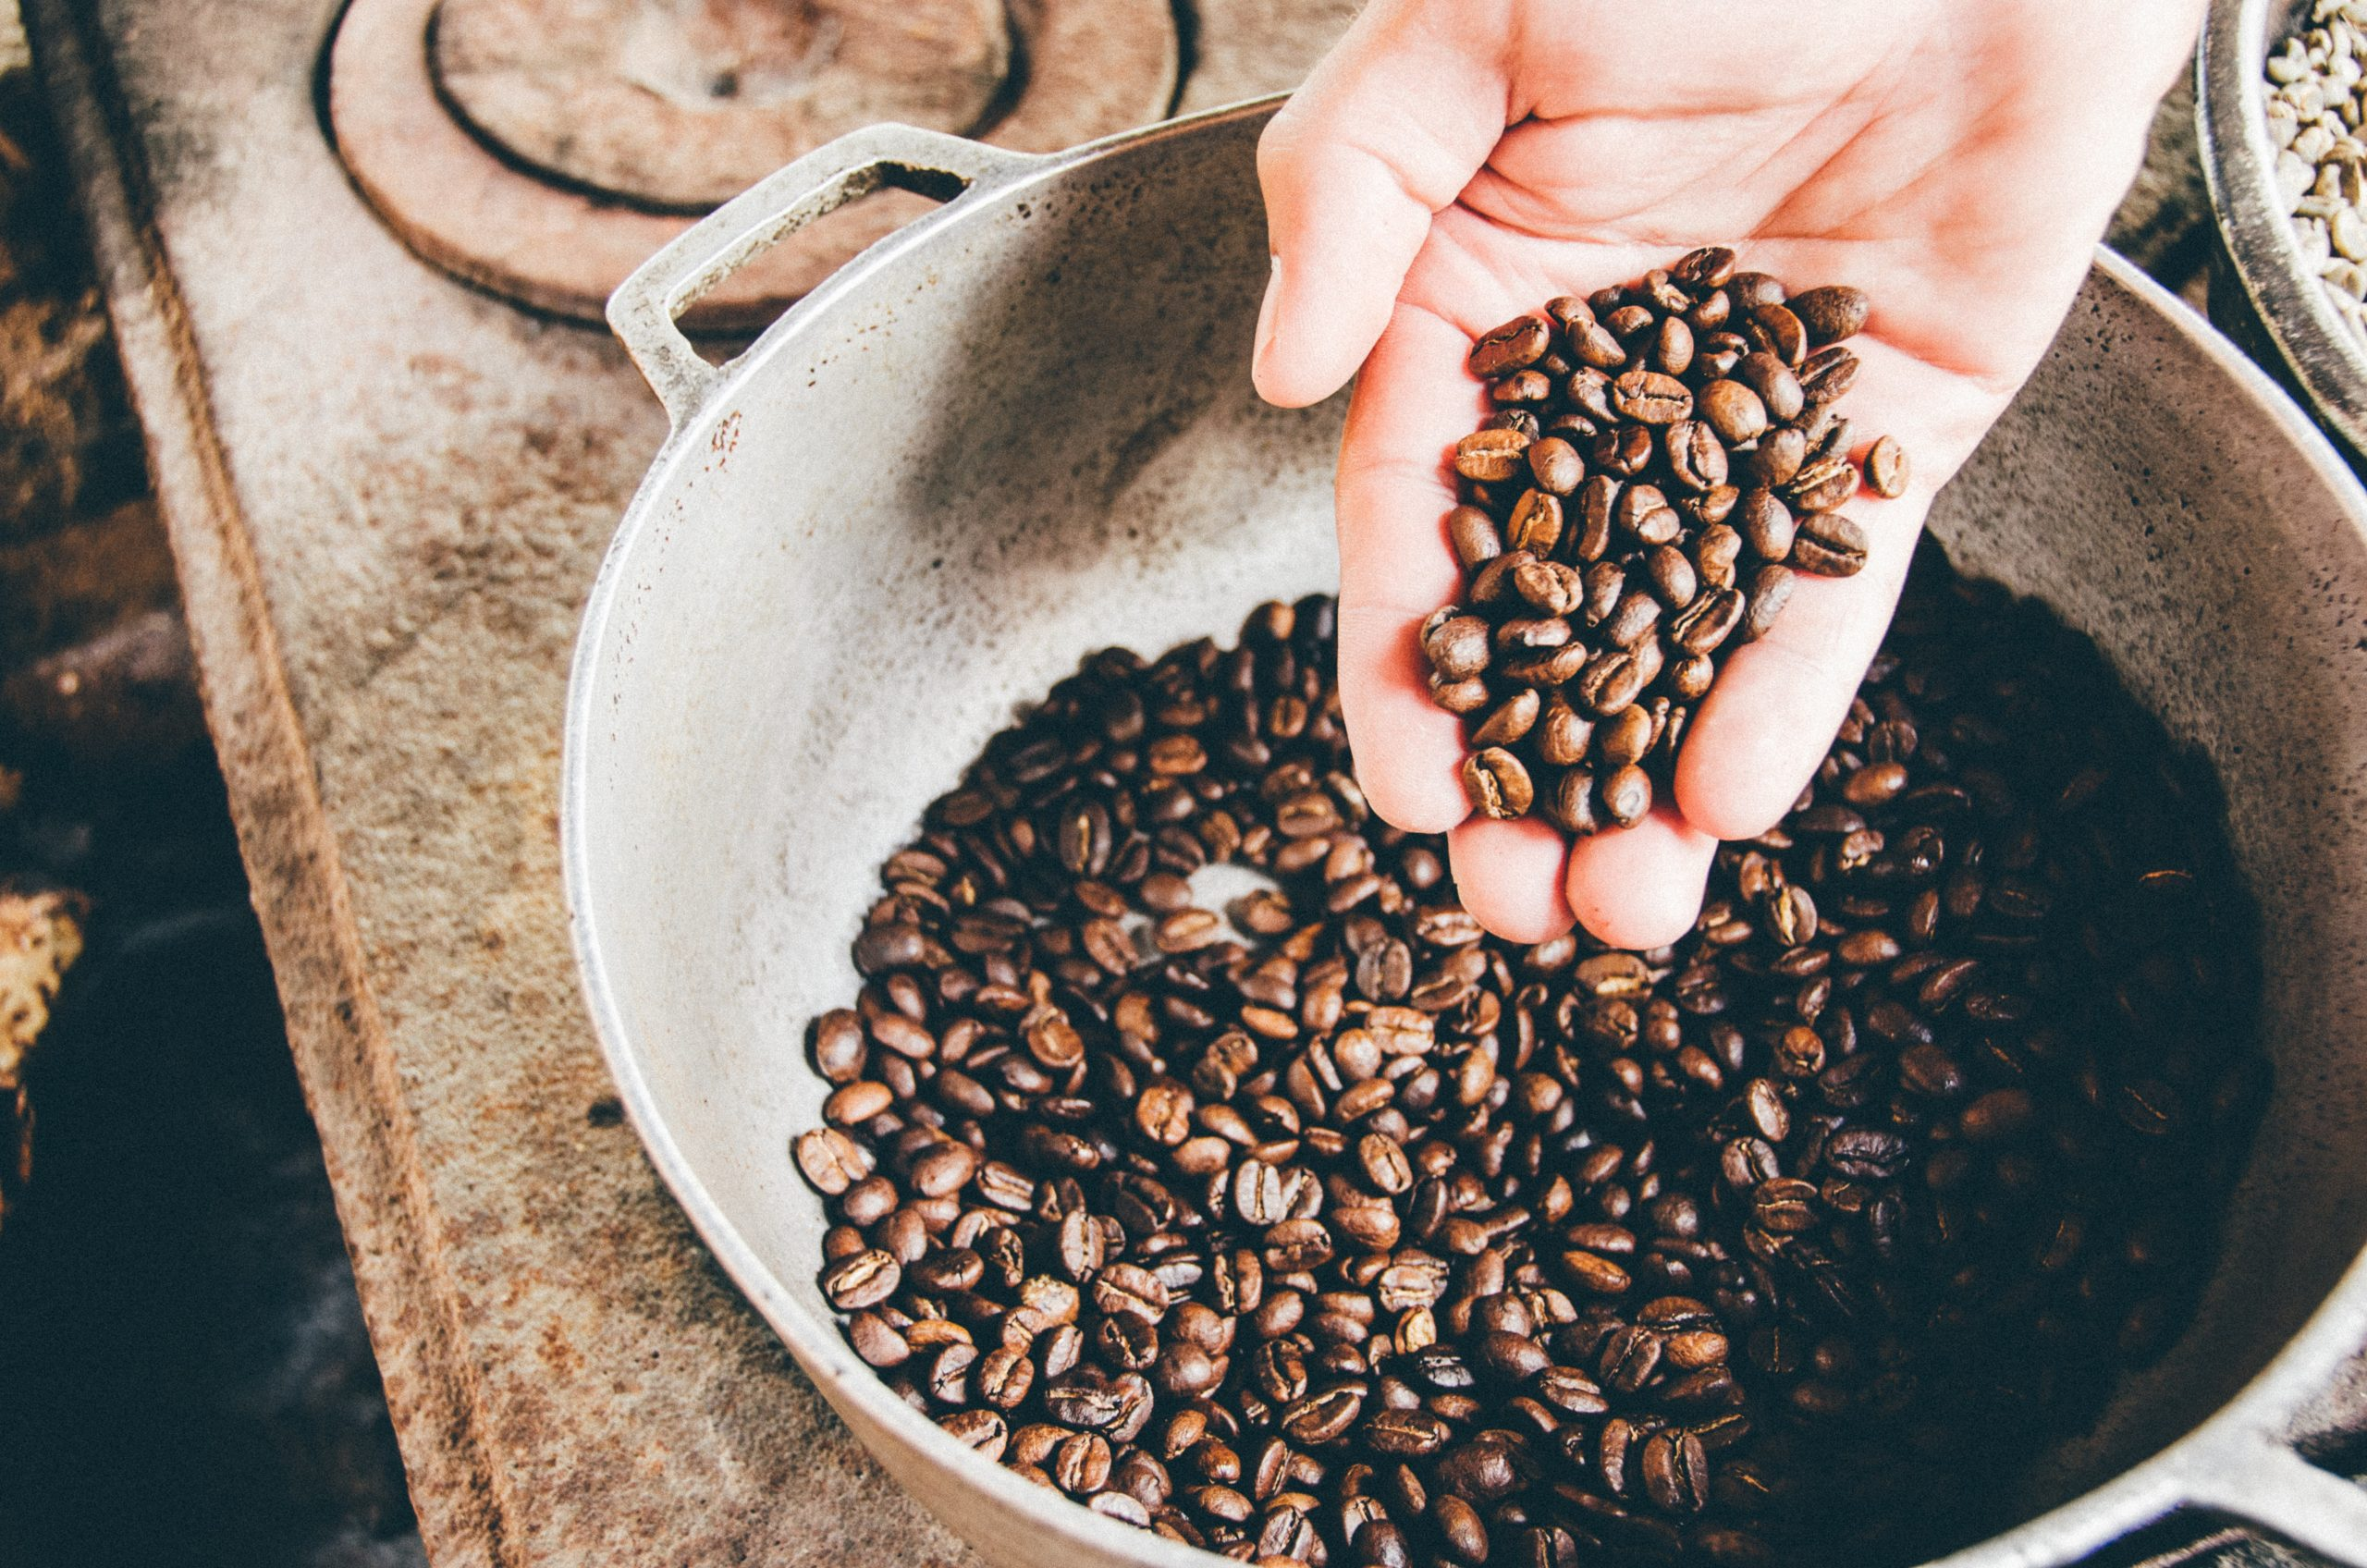 roasted coffee beans in hand